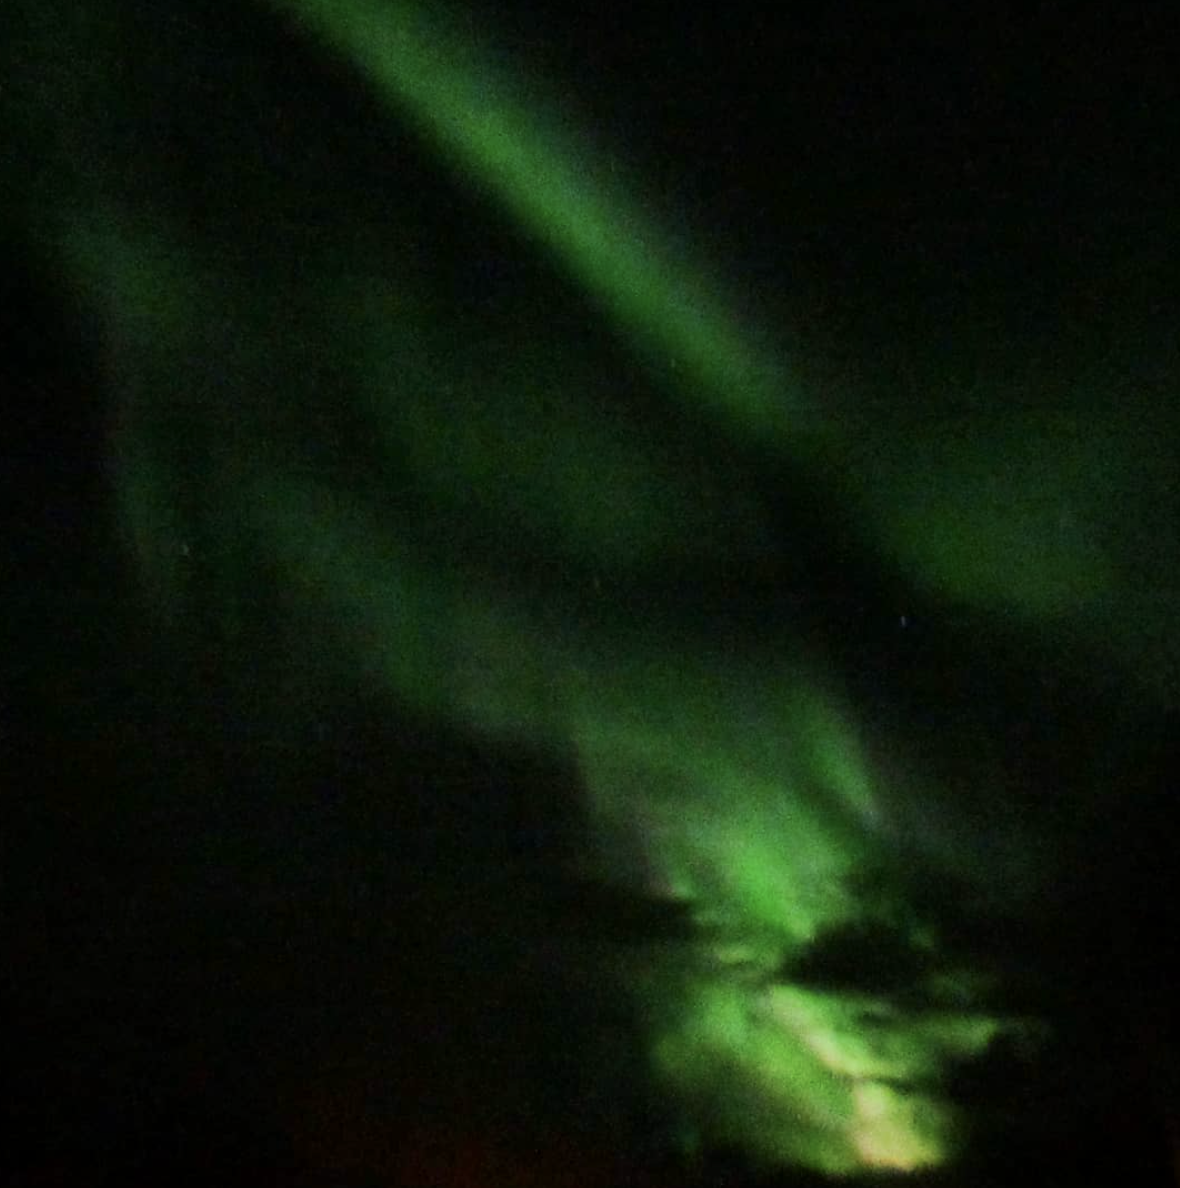 A somewhat blurry green glow waves across the dark of night